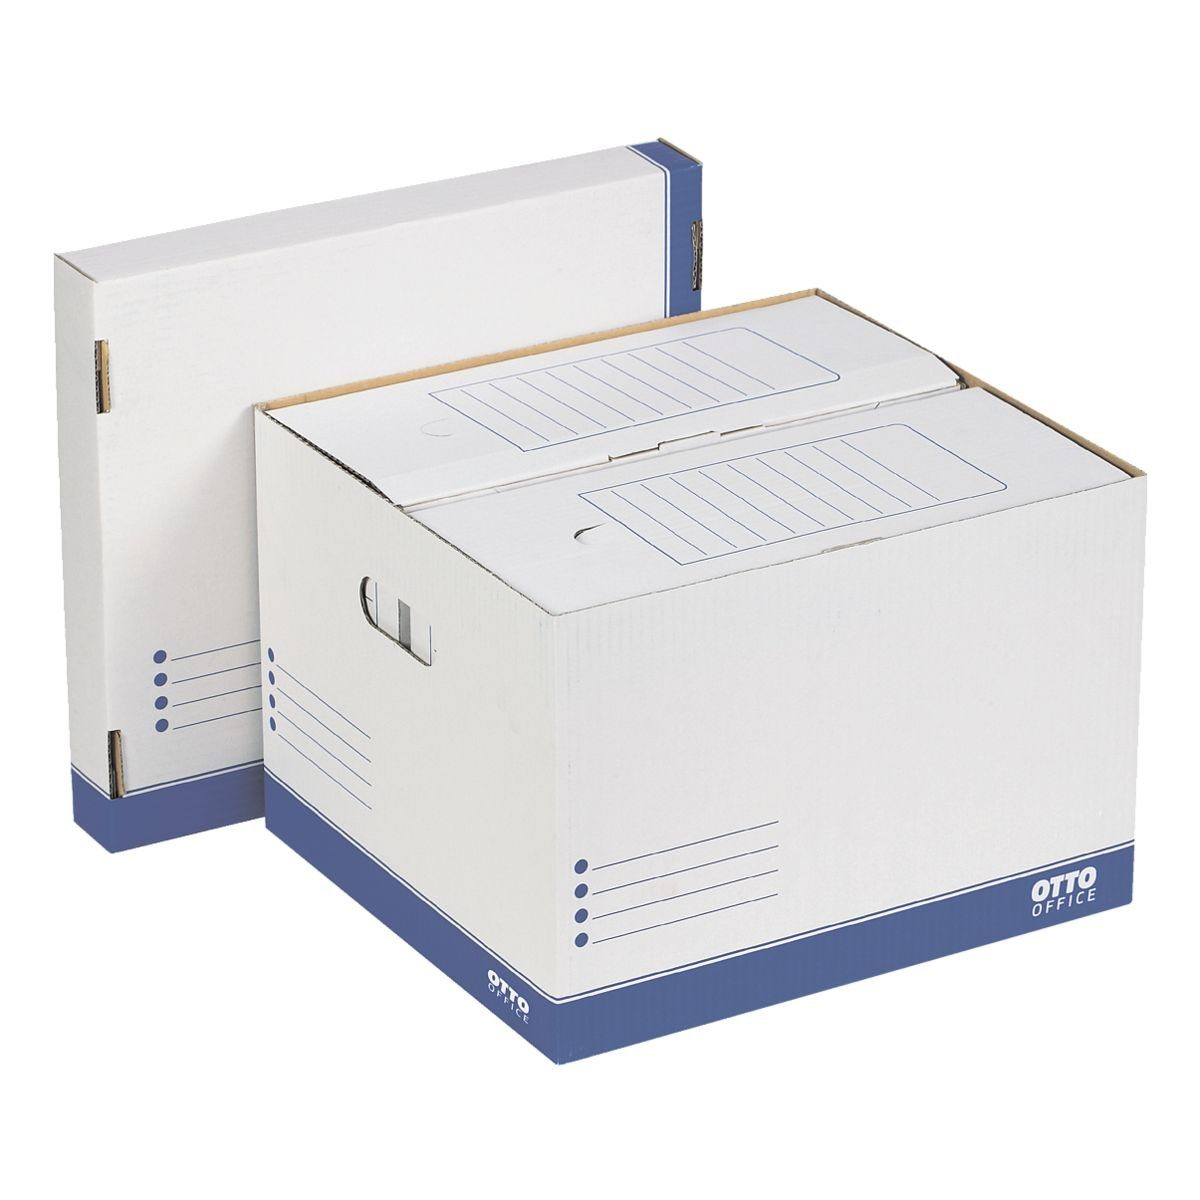 OTTO Office Standard Archiv-Container